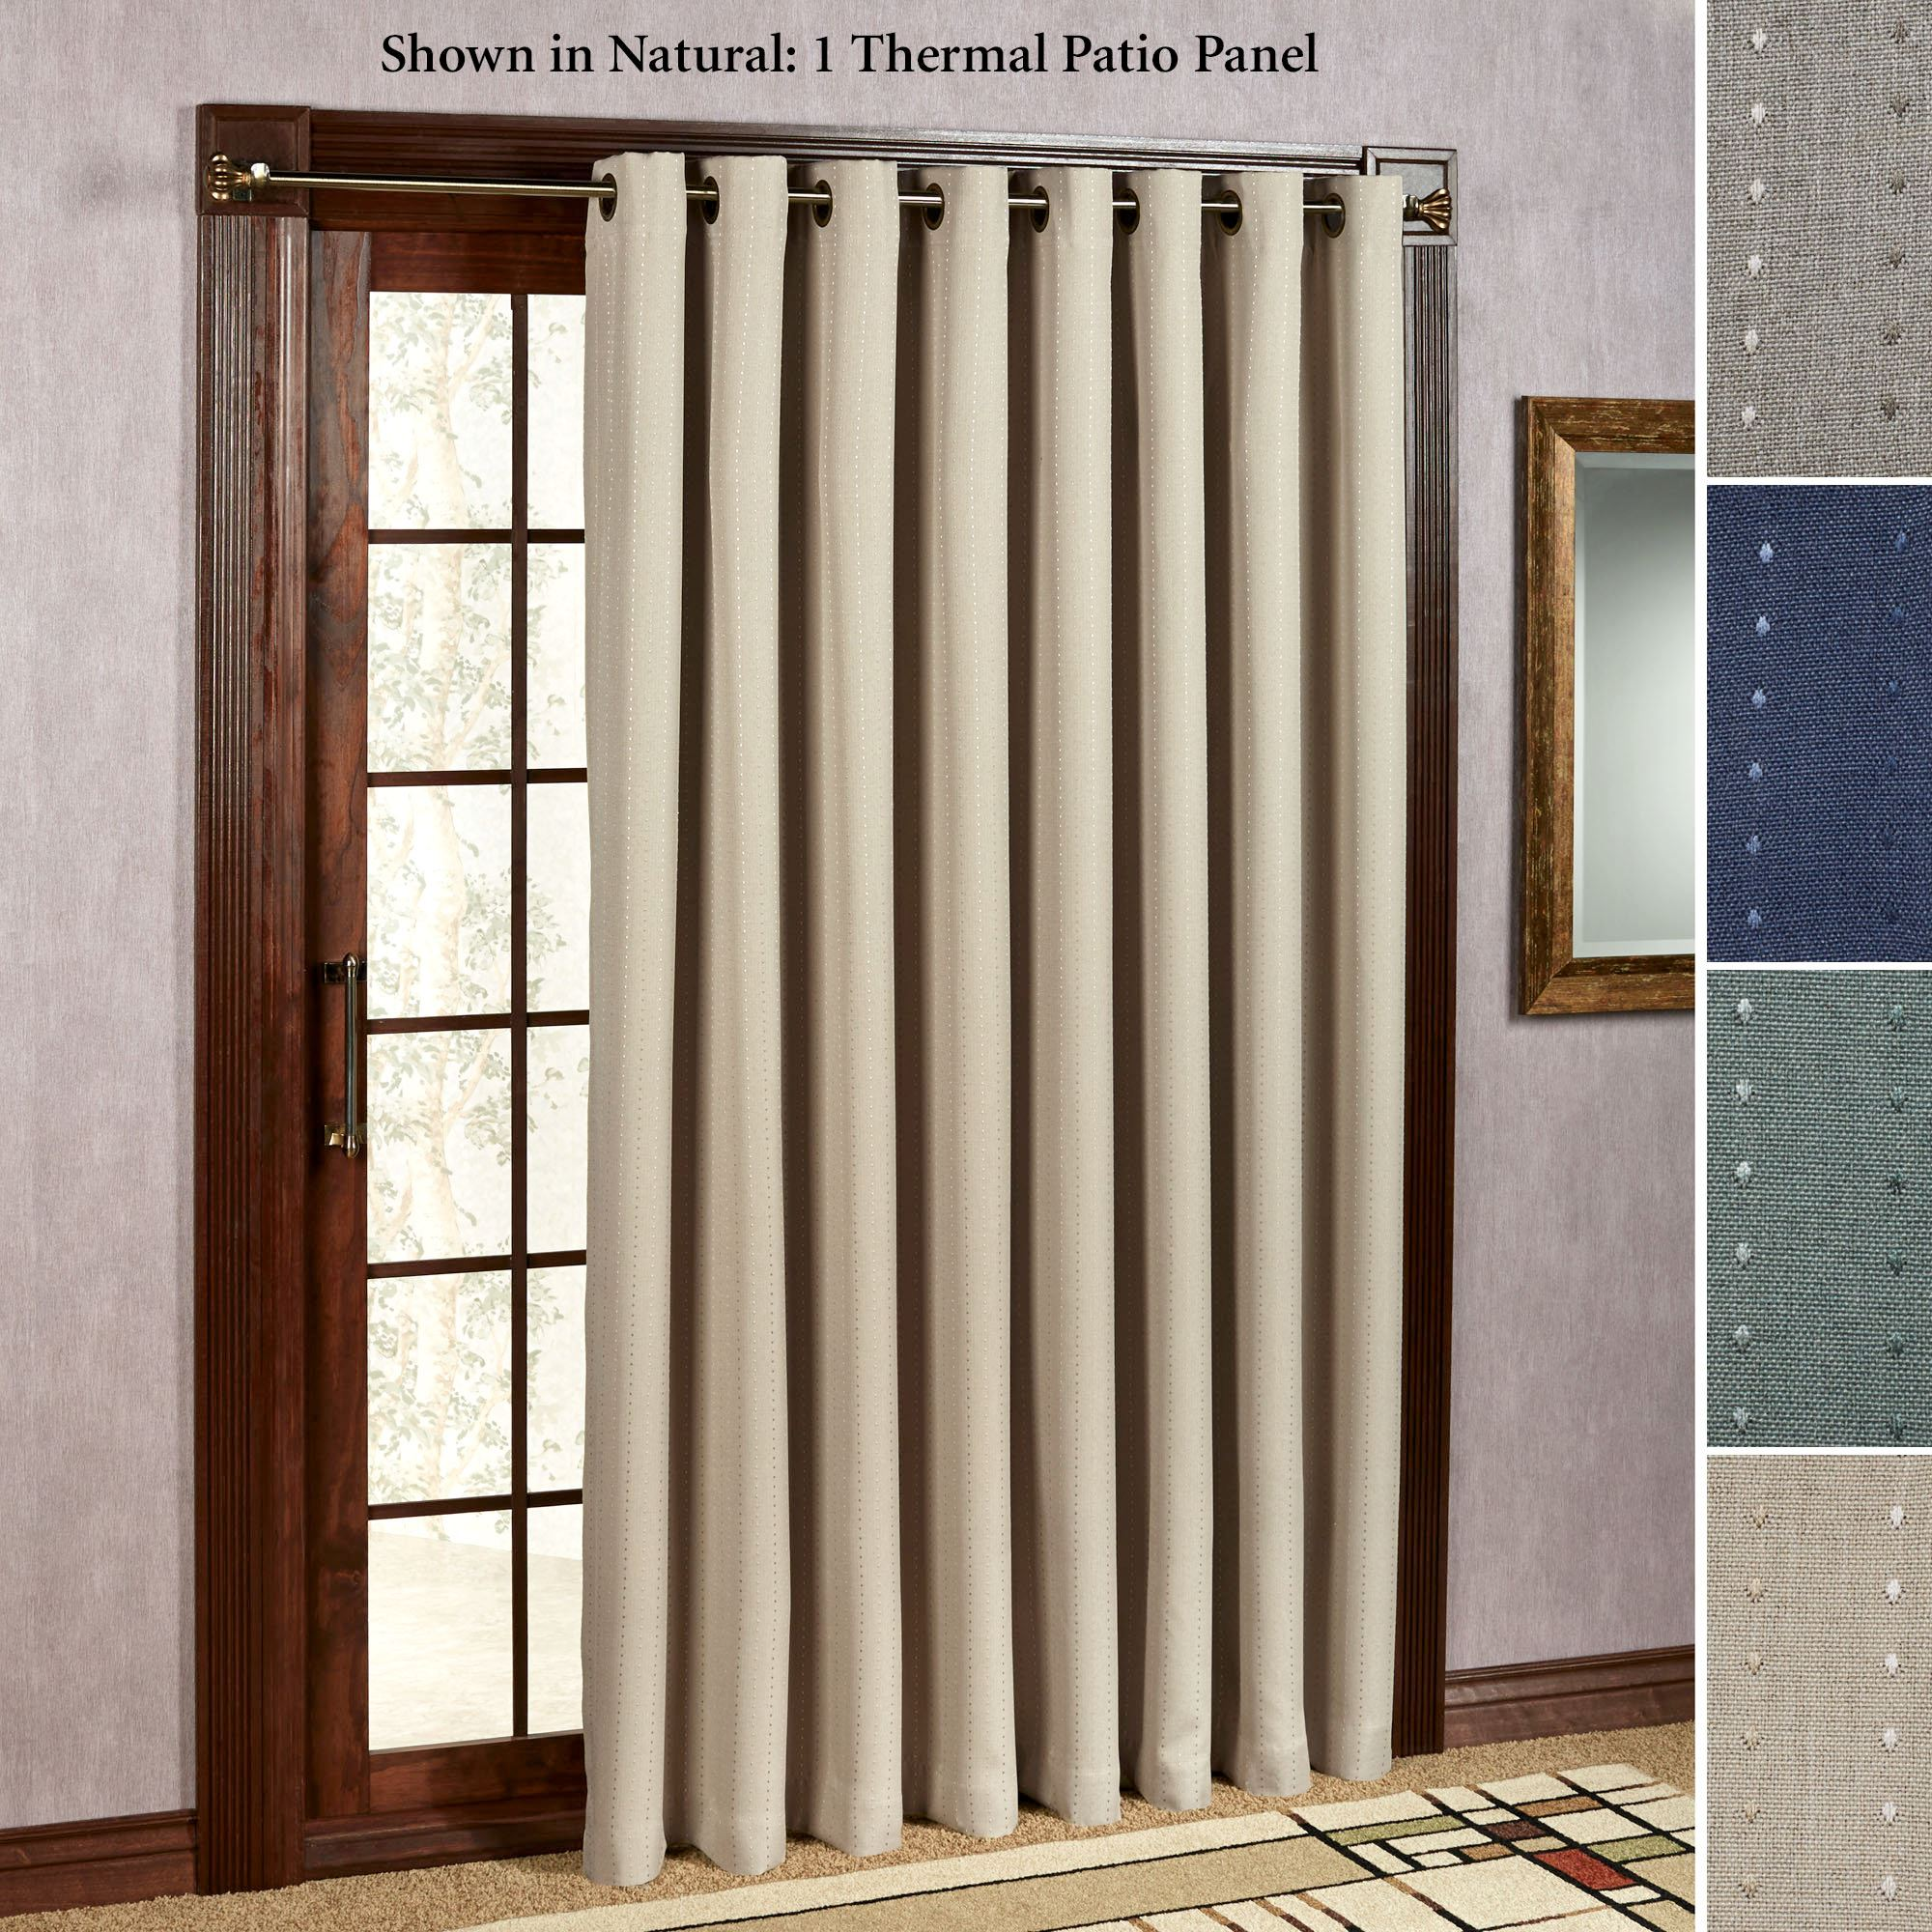 curtains for sliding glass doors grand pointe grommet patio curtain panel 110 x 84 UGHULWK